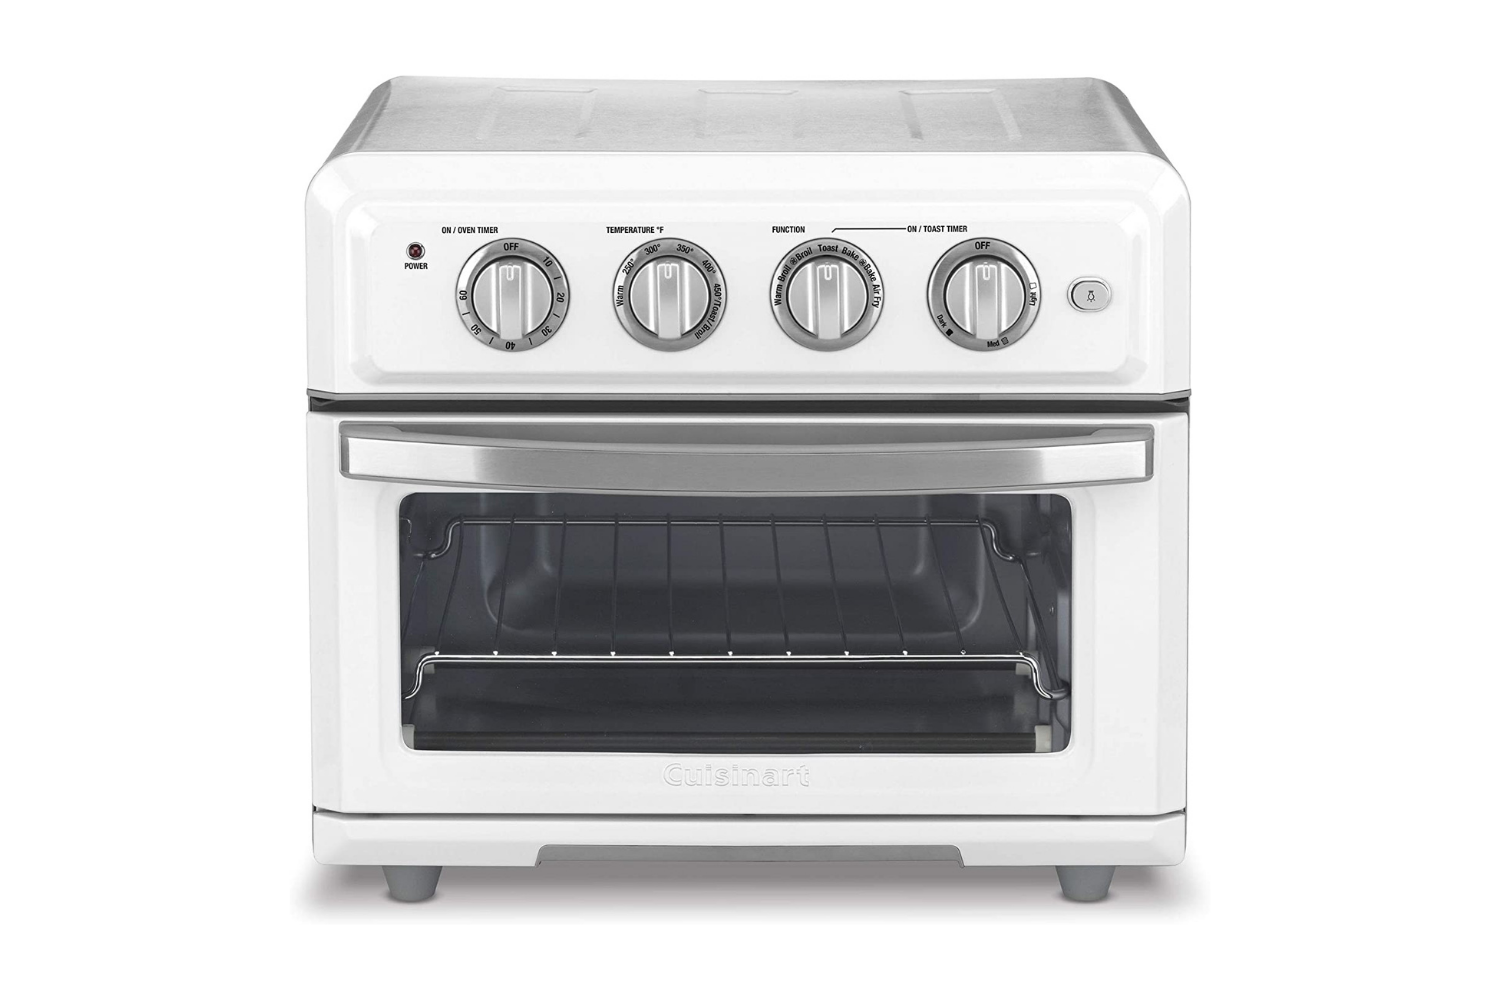 Cuisinart TOA-60 Air fryer Convection Toaster Oven